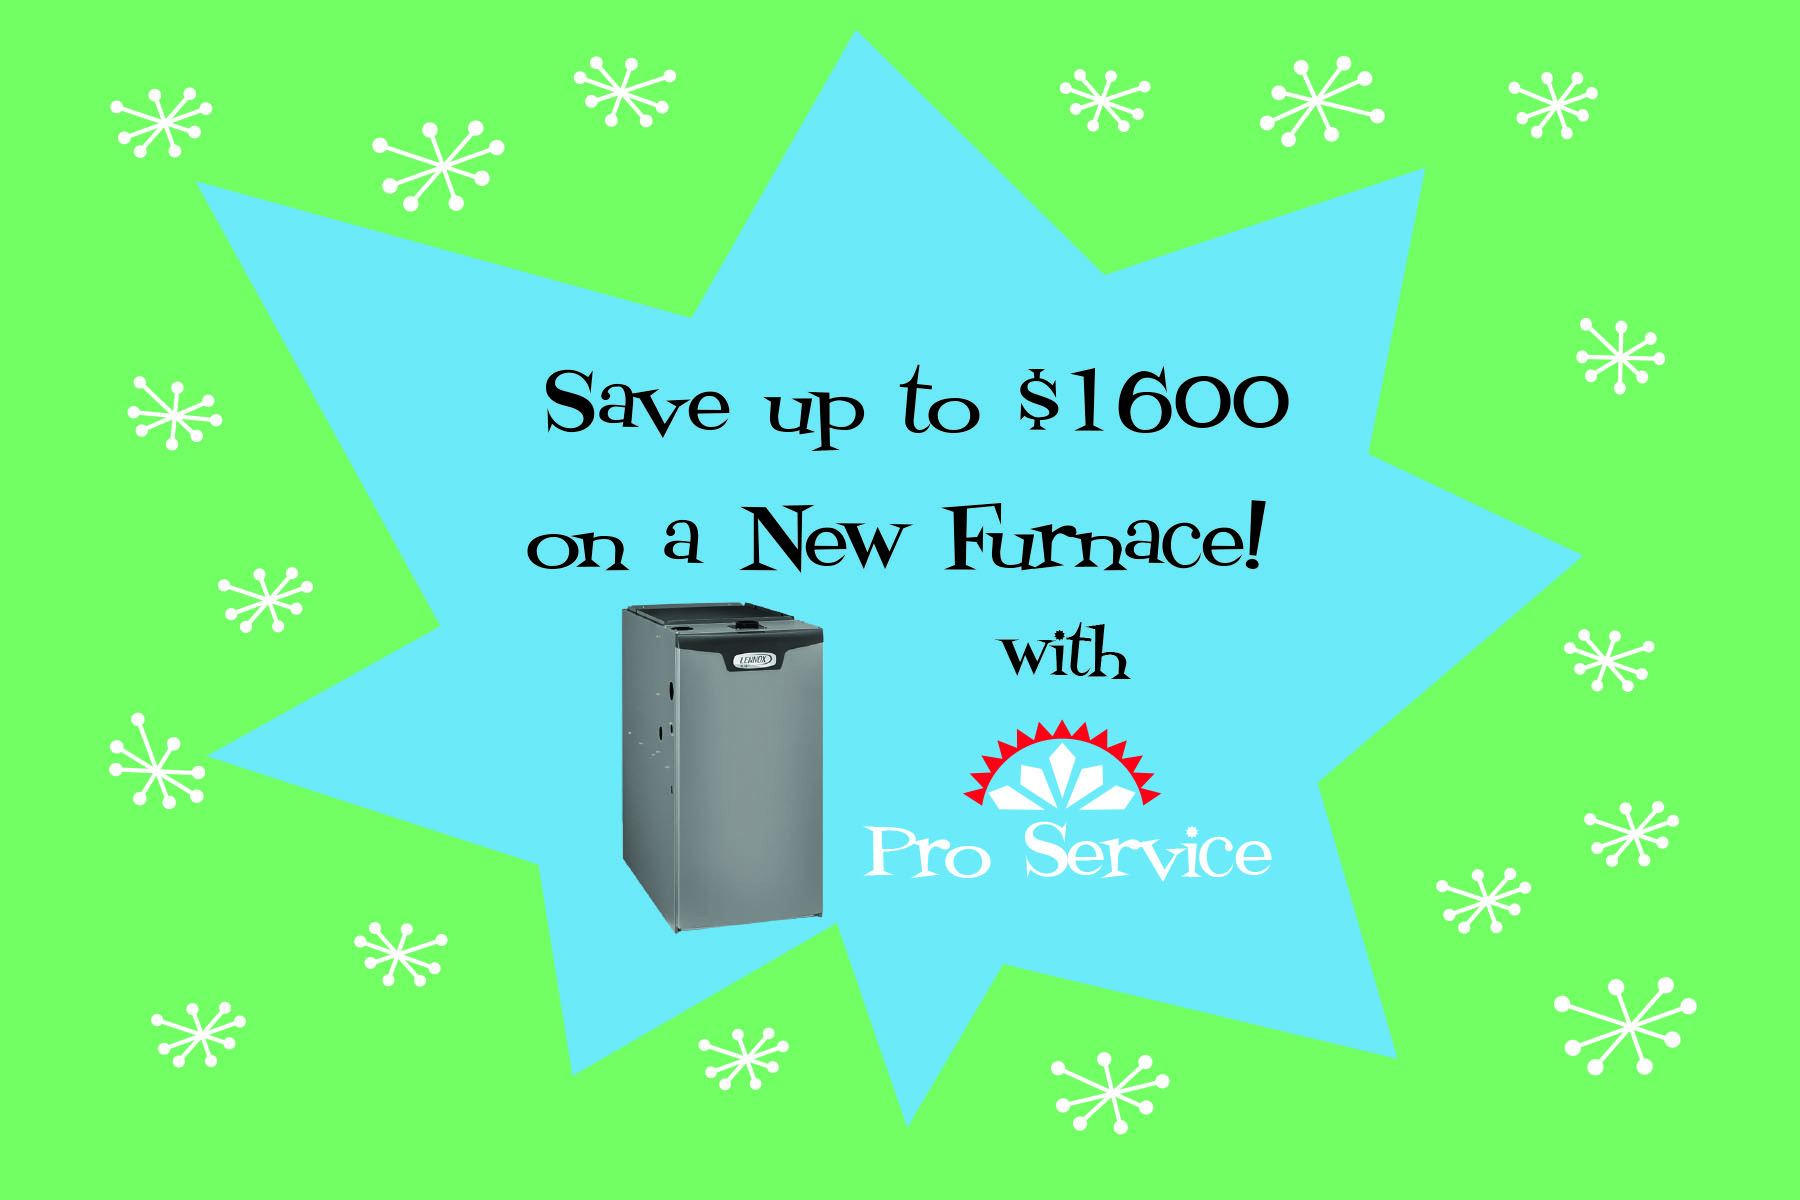 furnace special